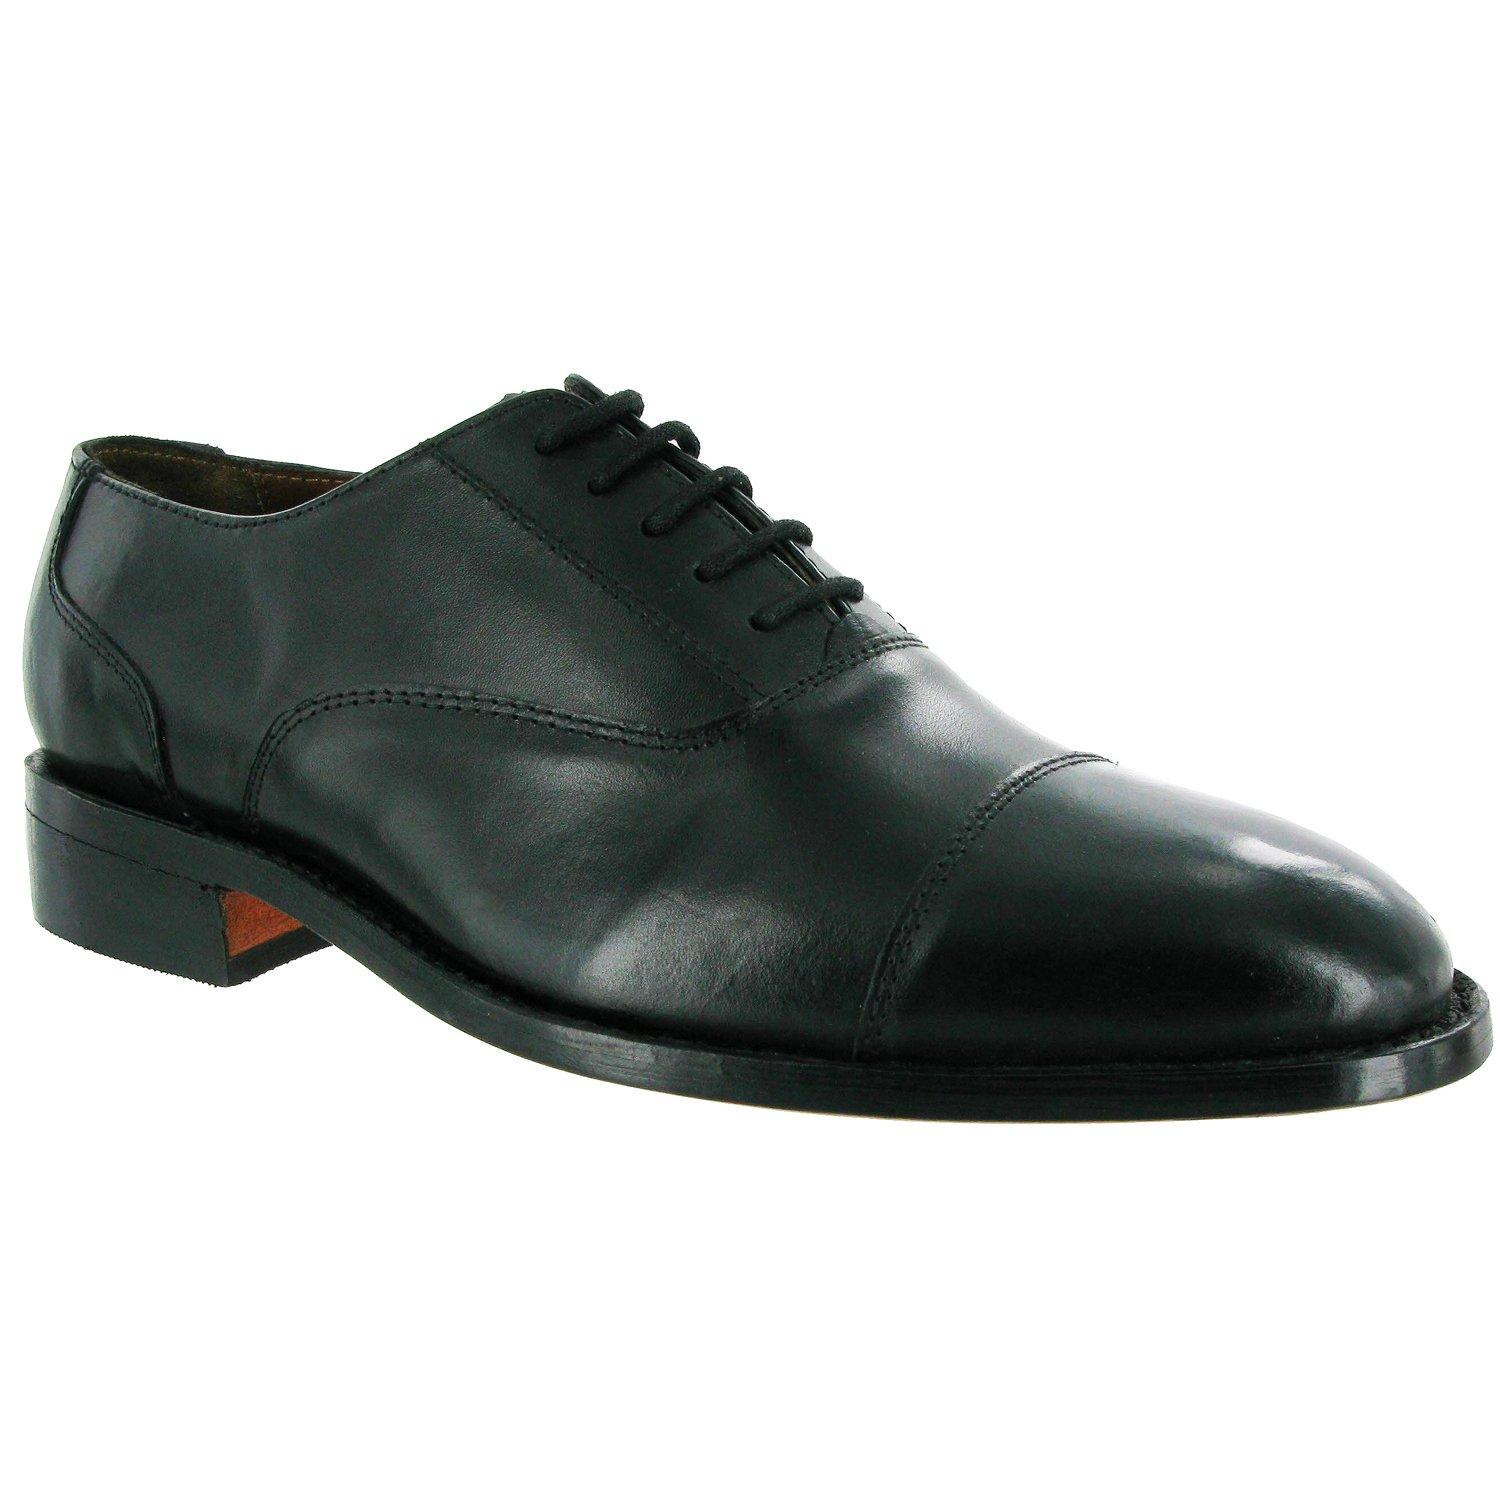 Amblers James Leather Soled Shoe / Mens Shoes (8.5 US) (Black) by Amblers